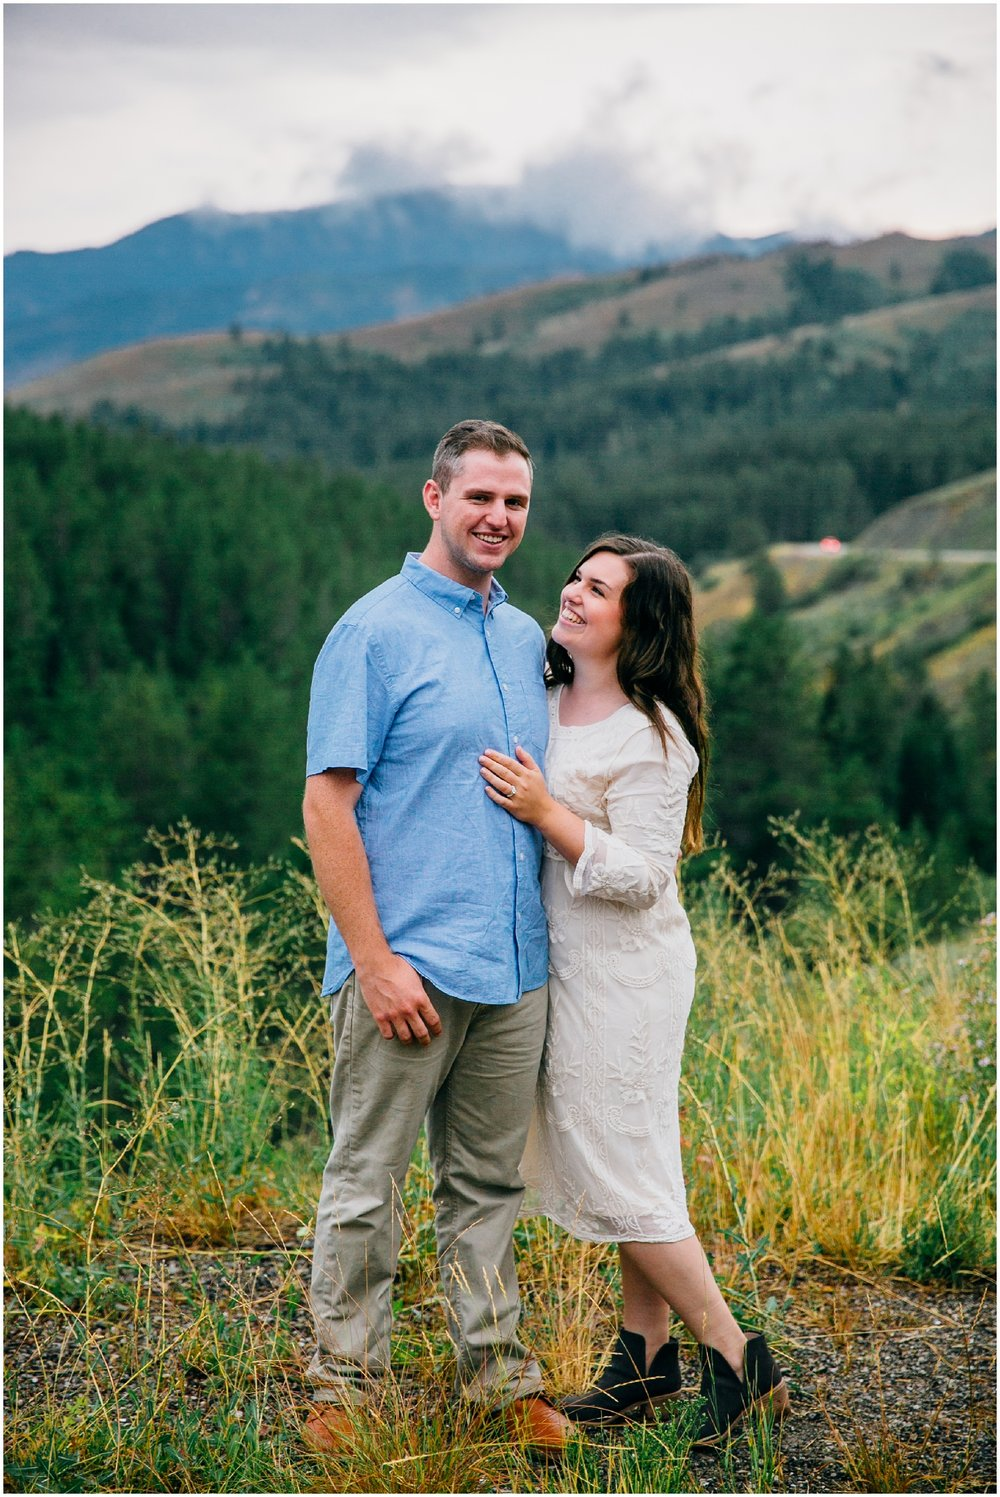 swan-valley-jackson-wyoming-engagements-idaho-colorado-wyoming-wedding-photographer_0910.jpg